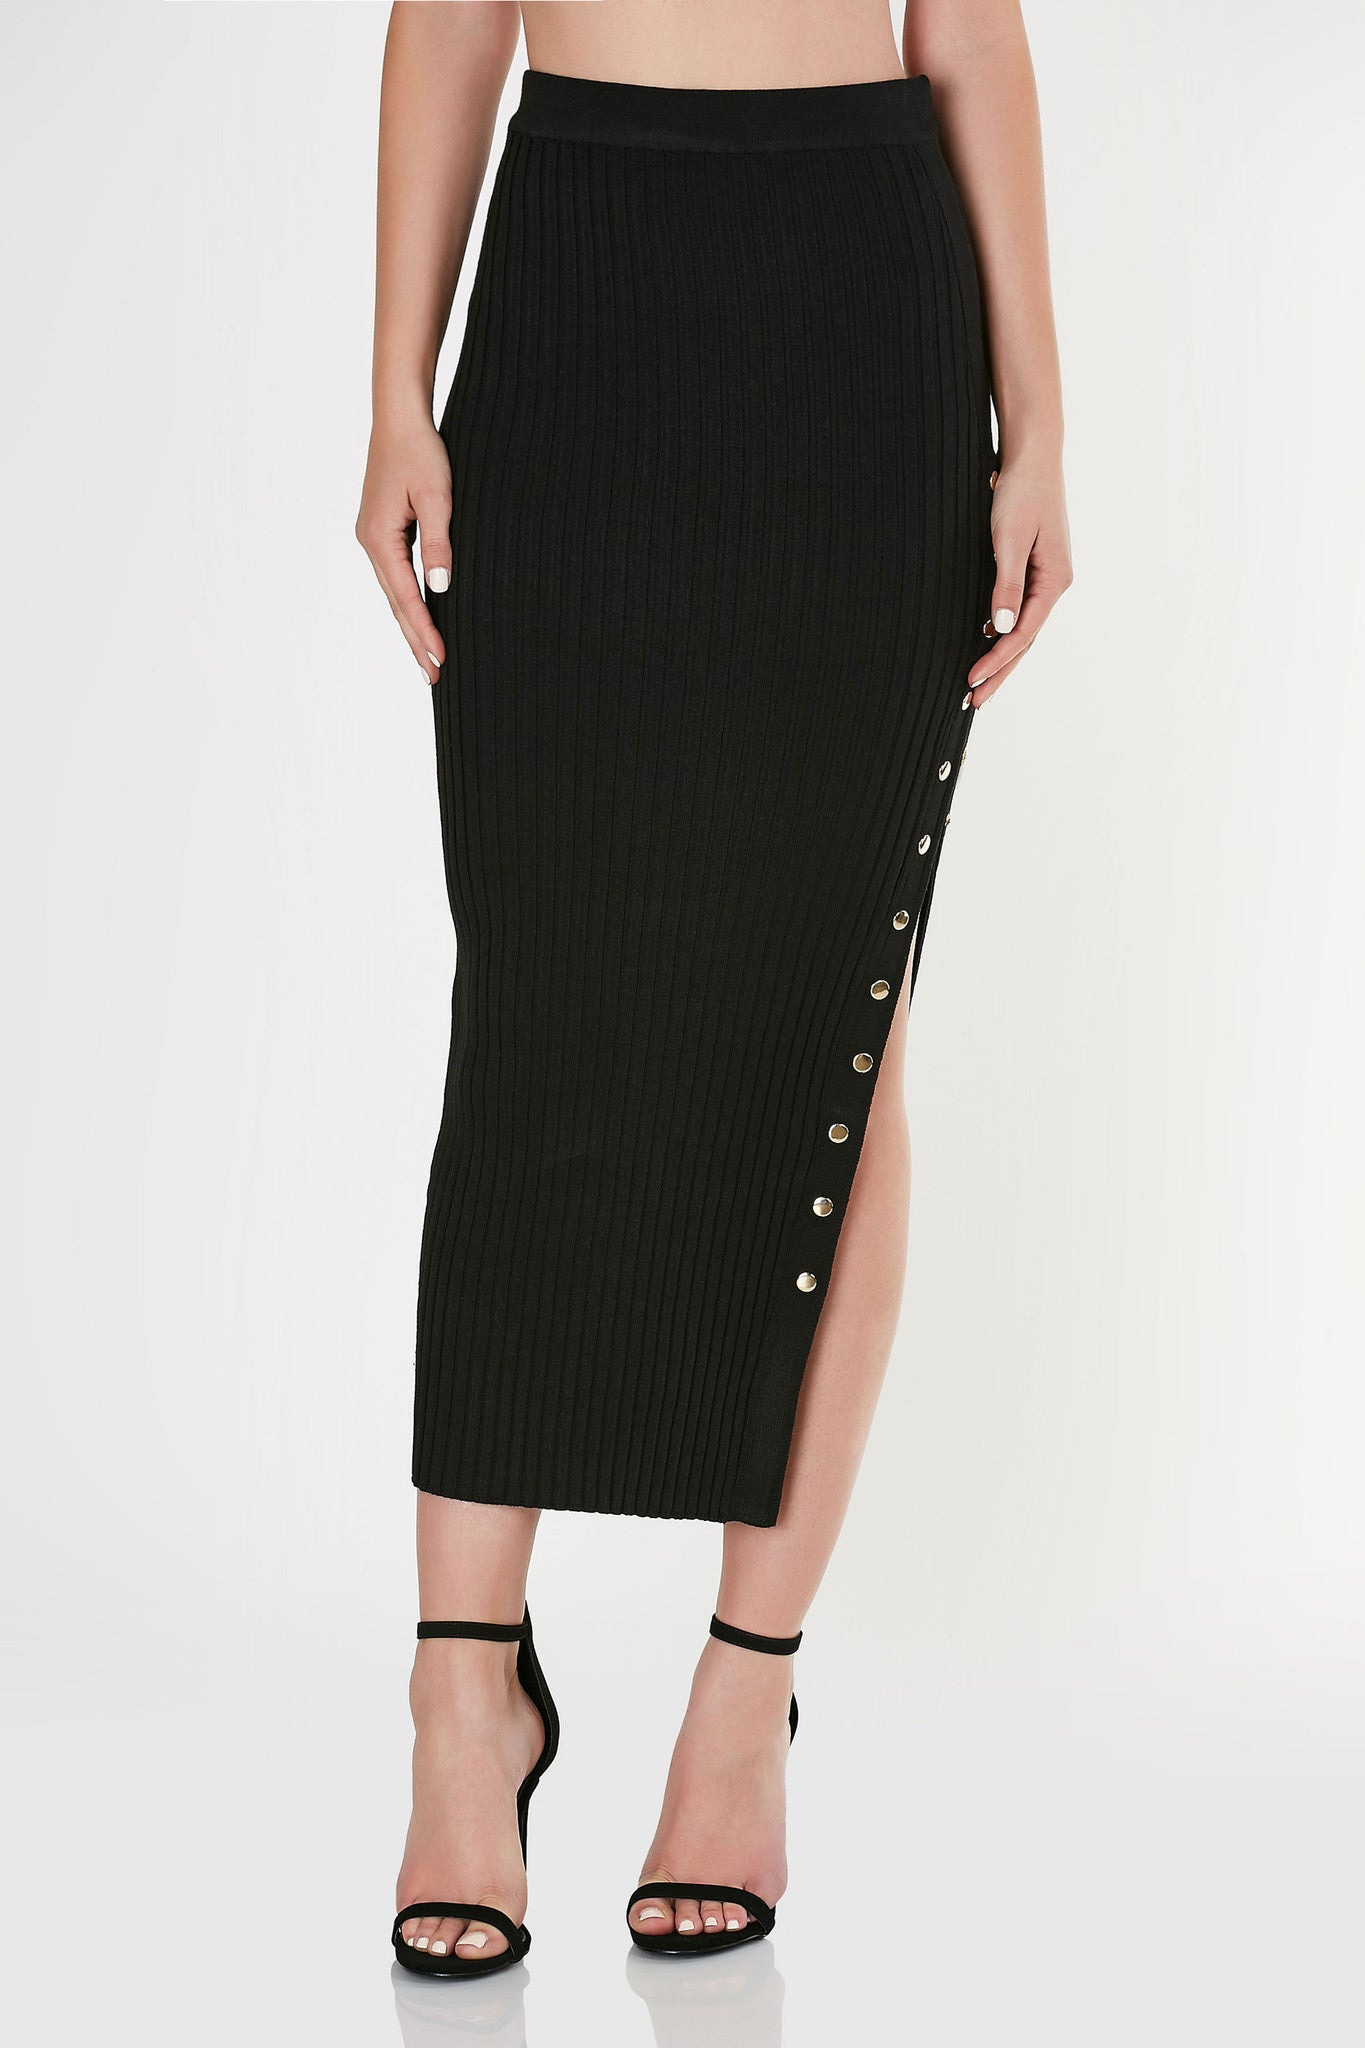 Sexy high rise bodycon skirt made of stretchy ribbed material. Straight hem with gold hardware snap button detailing for a side slit effect. Comes in a set with matching top sold separately.